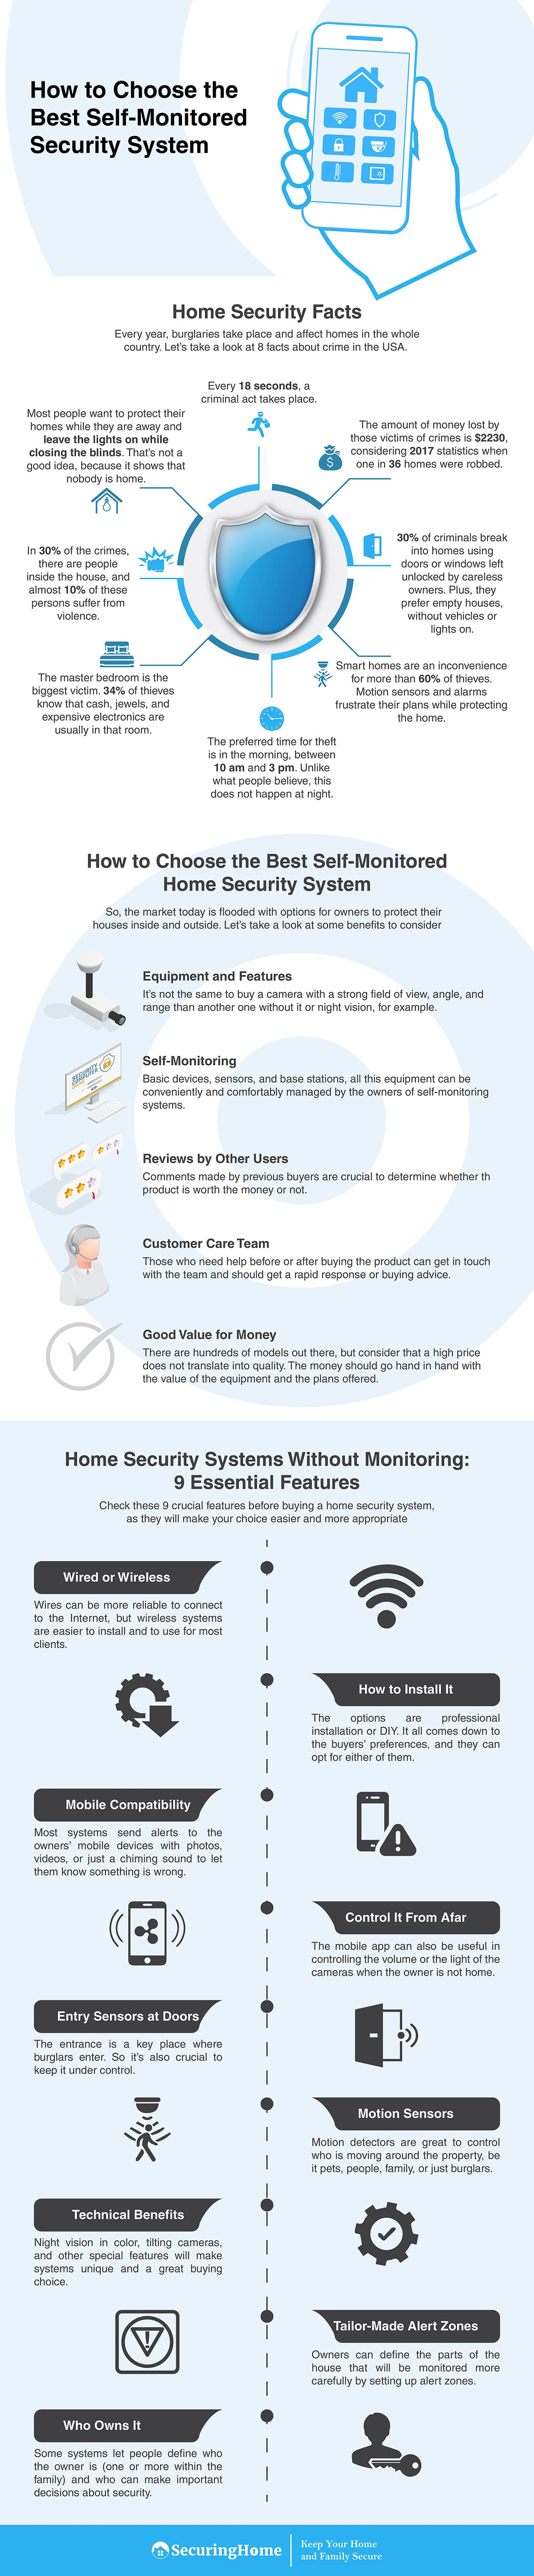 Best Self-Monitored Home Security Systems of 2021